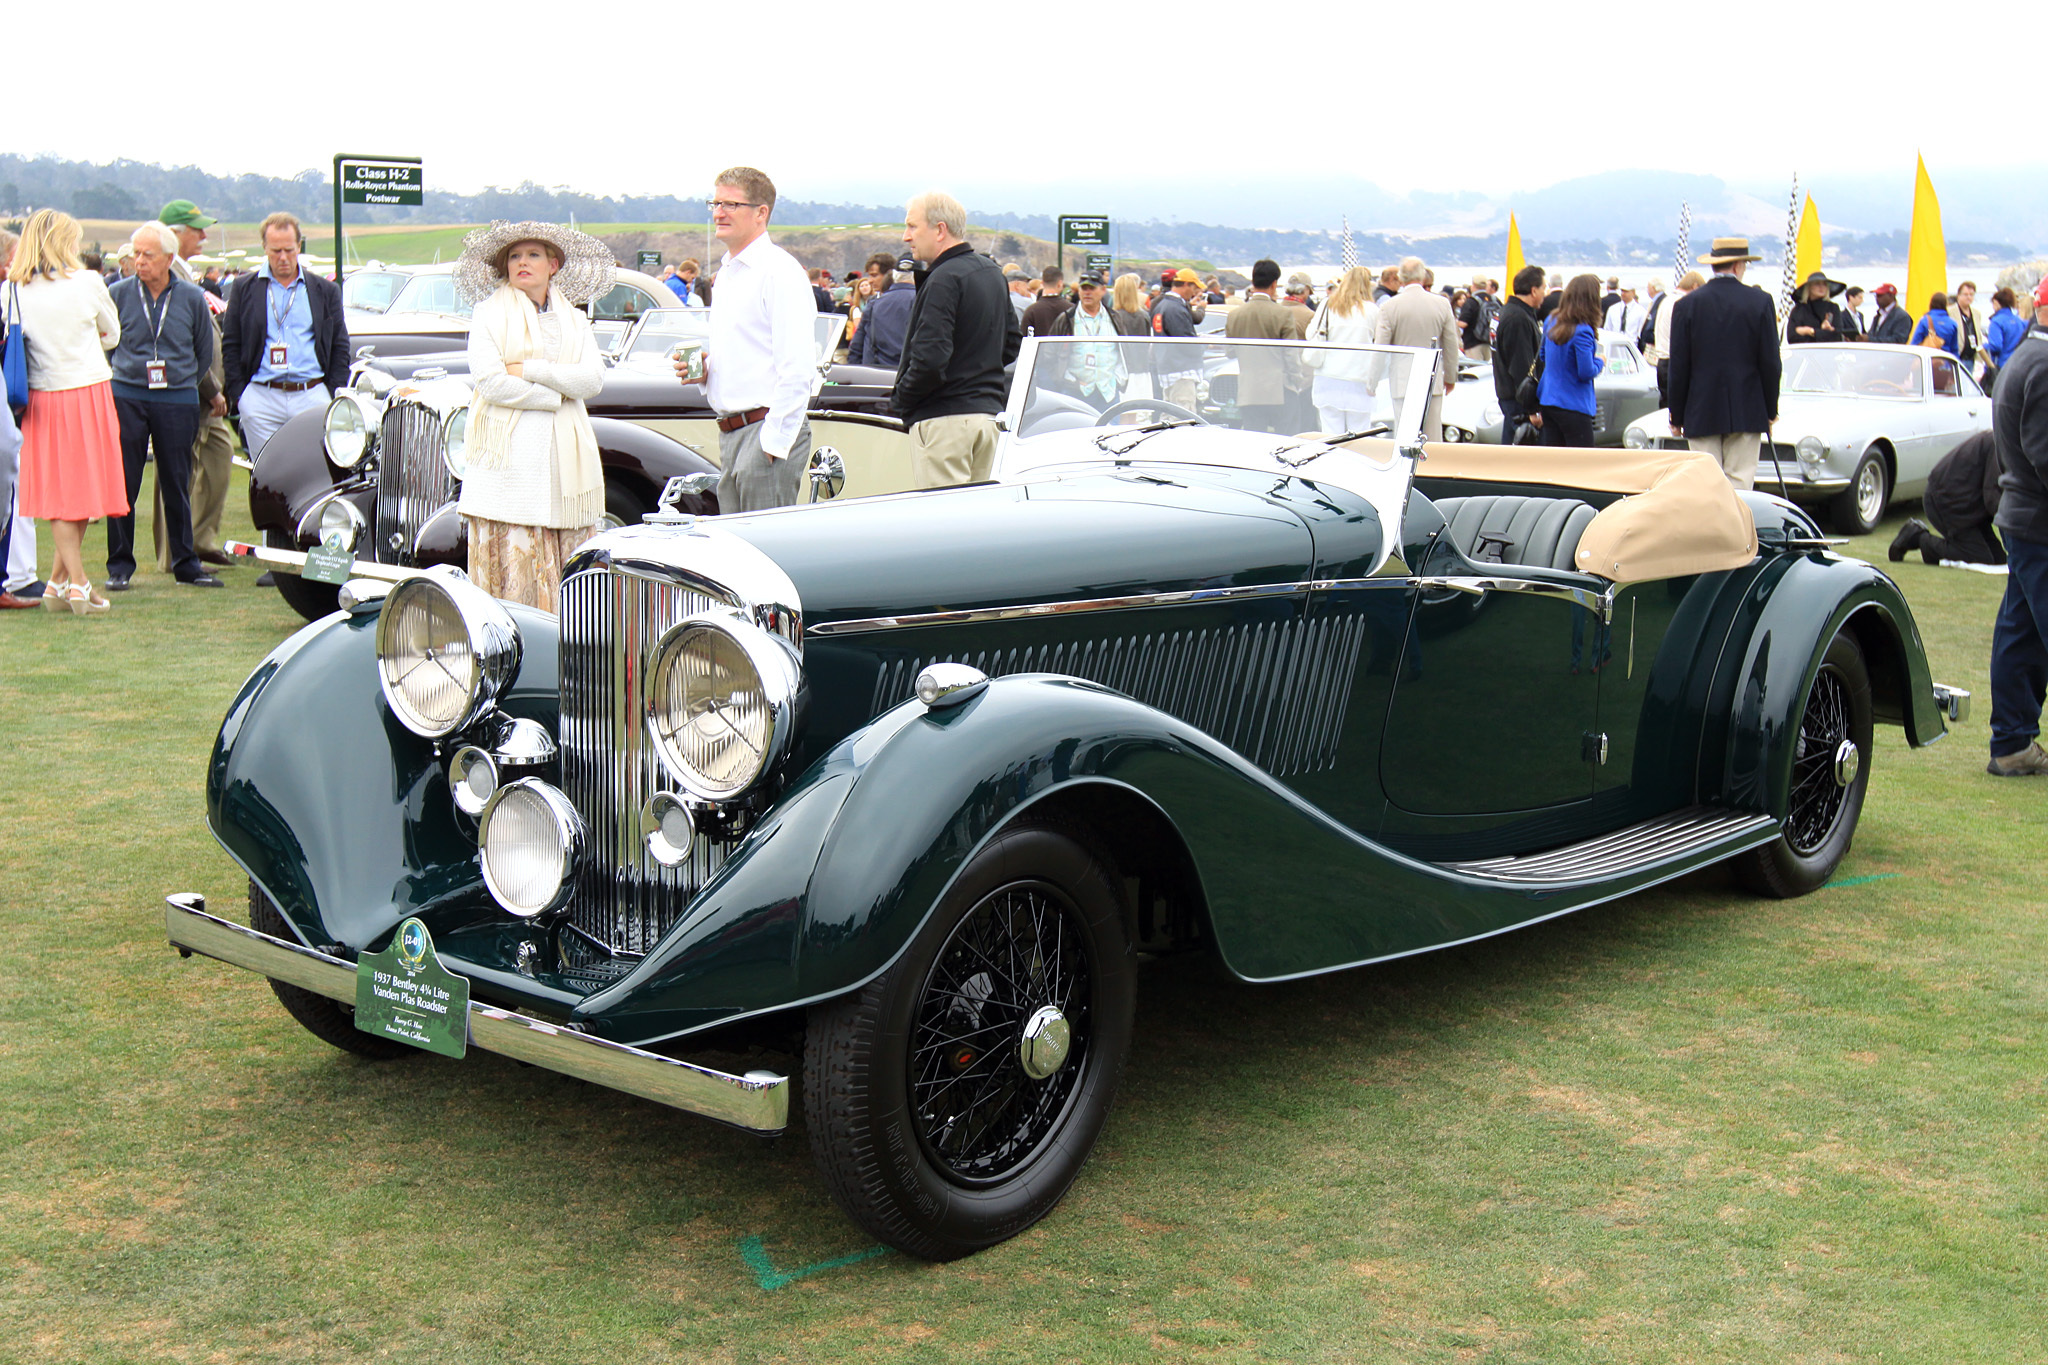 1937 Bentley 4¼ Litre Vanden Plas Roadster B-42-KT. This two seat 4¼ Derby Bentley was sold through the London Bentley dealership of Jack Barclay, and delivered in July 1937 to its first owner, S. B. White. It was ordered with sporty yet graceful coachwork from Vanden Plas that is similar to two other very famous Derby Bentleys owned by Sir Malcolm Campbell and the Countess of Warwick. Its current owner purchased the car in 1972 and has enjoyed it ever since.